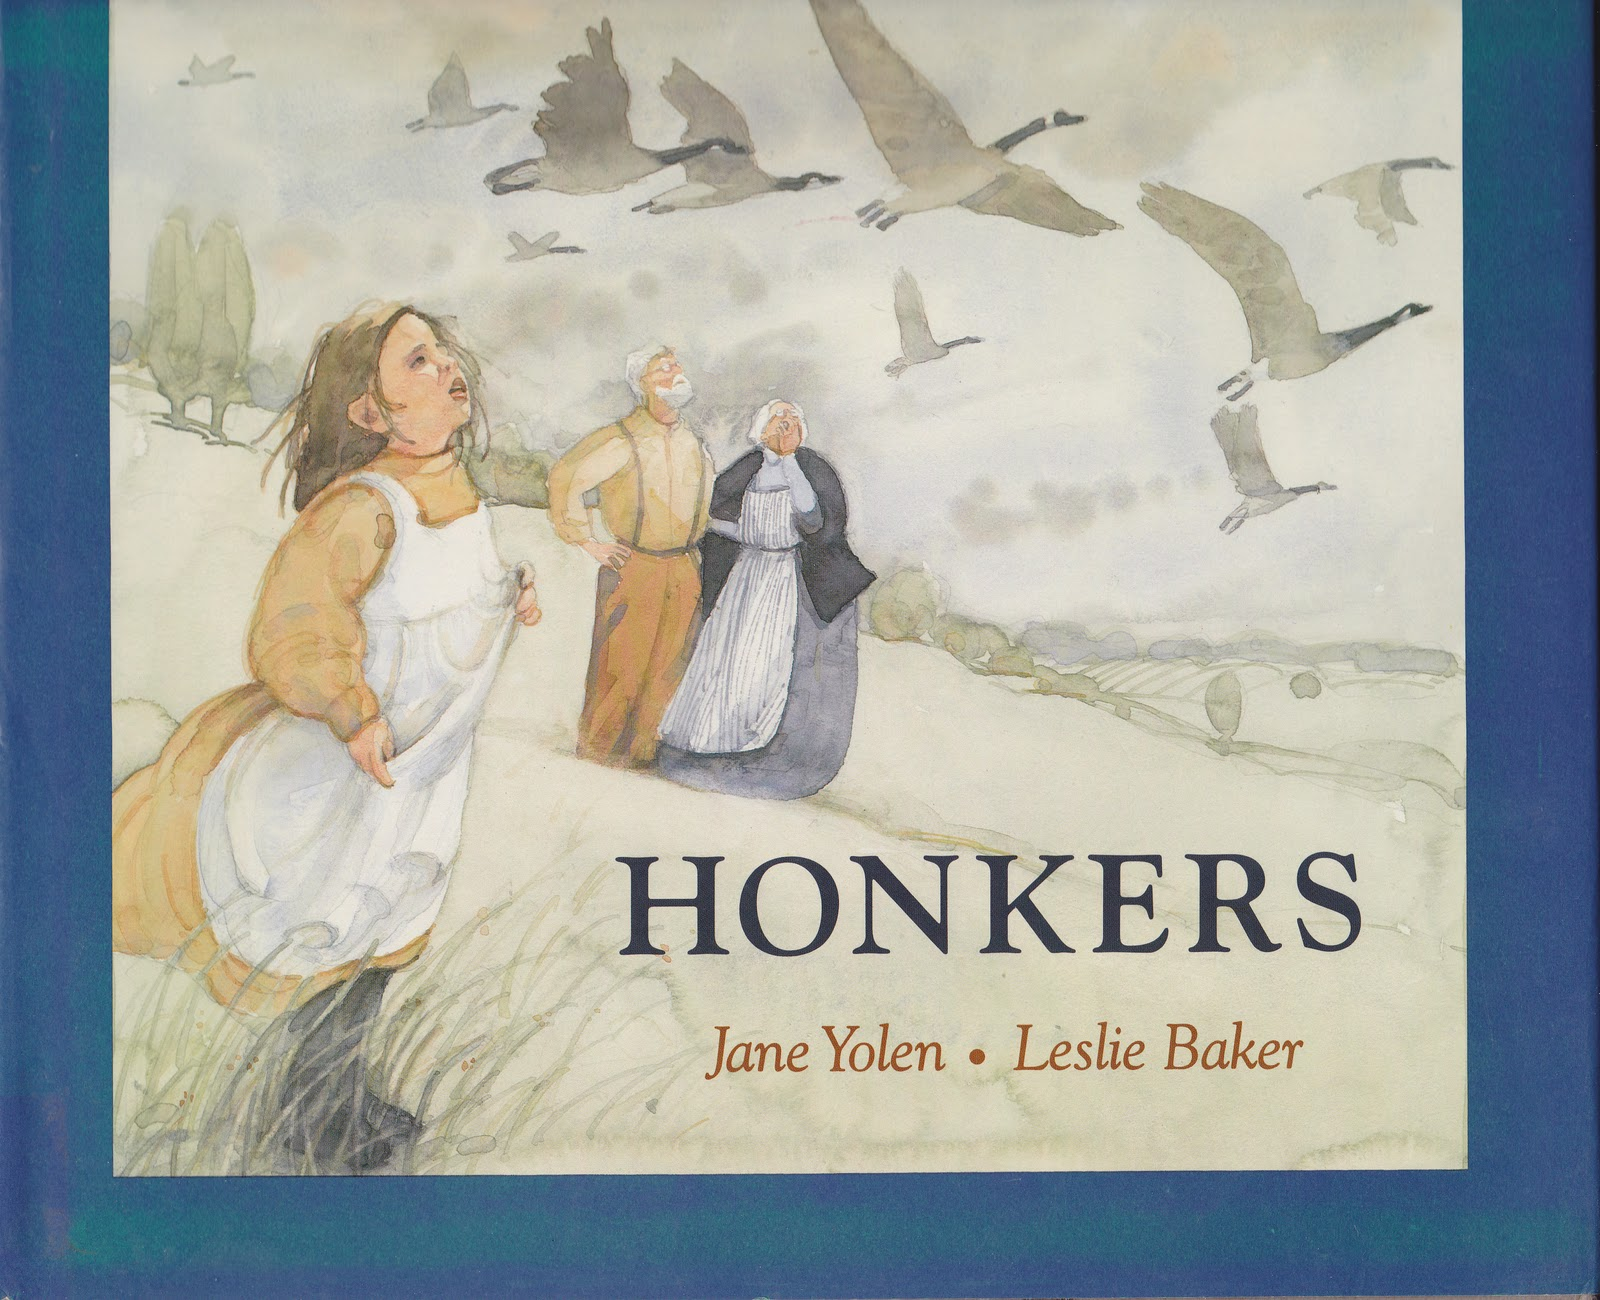 The Marlowe Bookshelf: Honkers